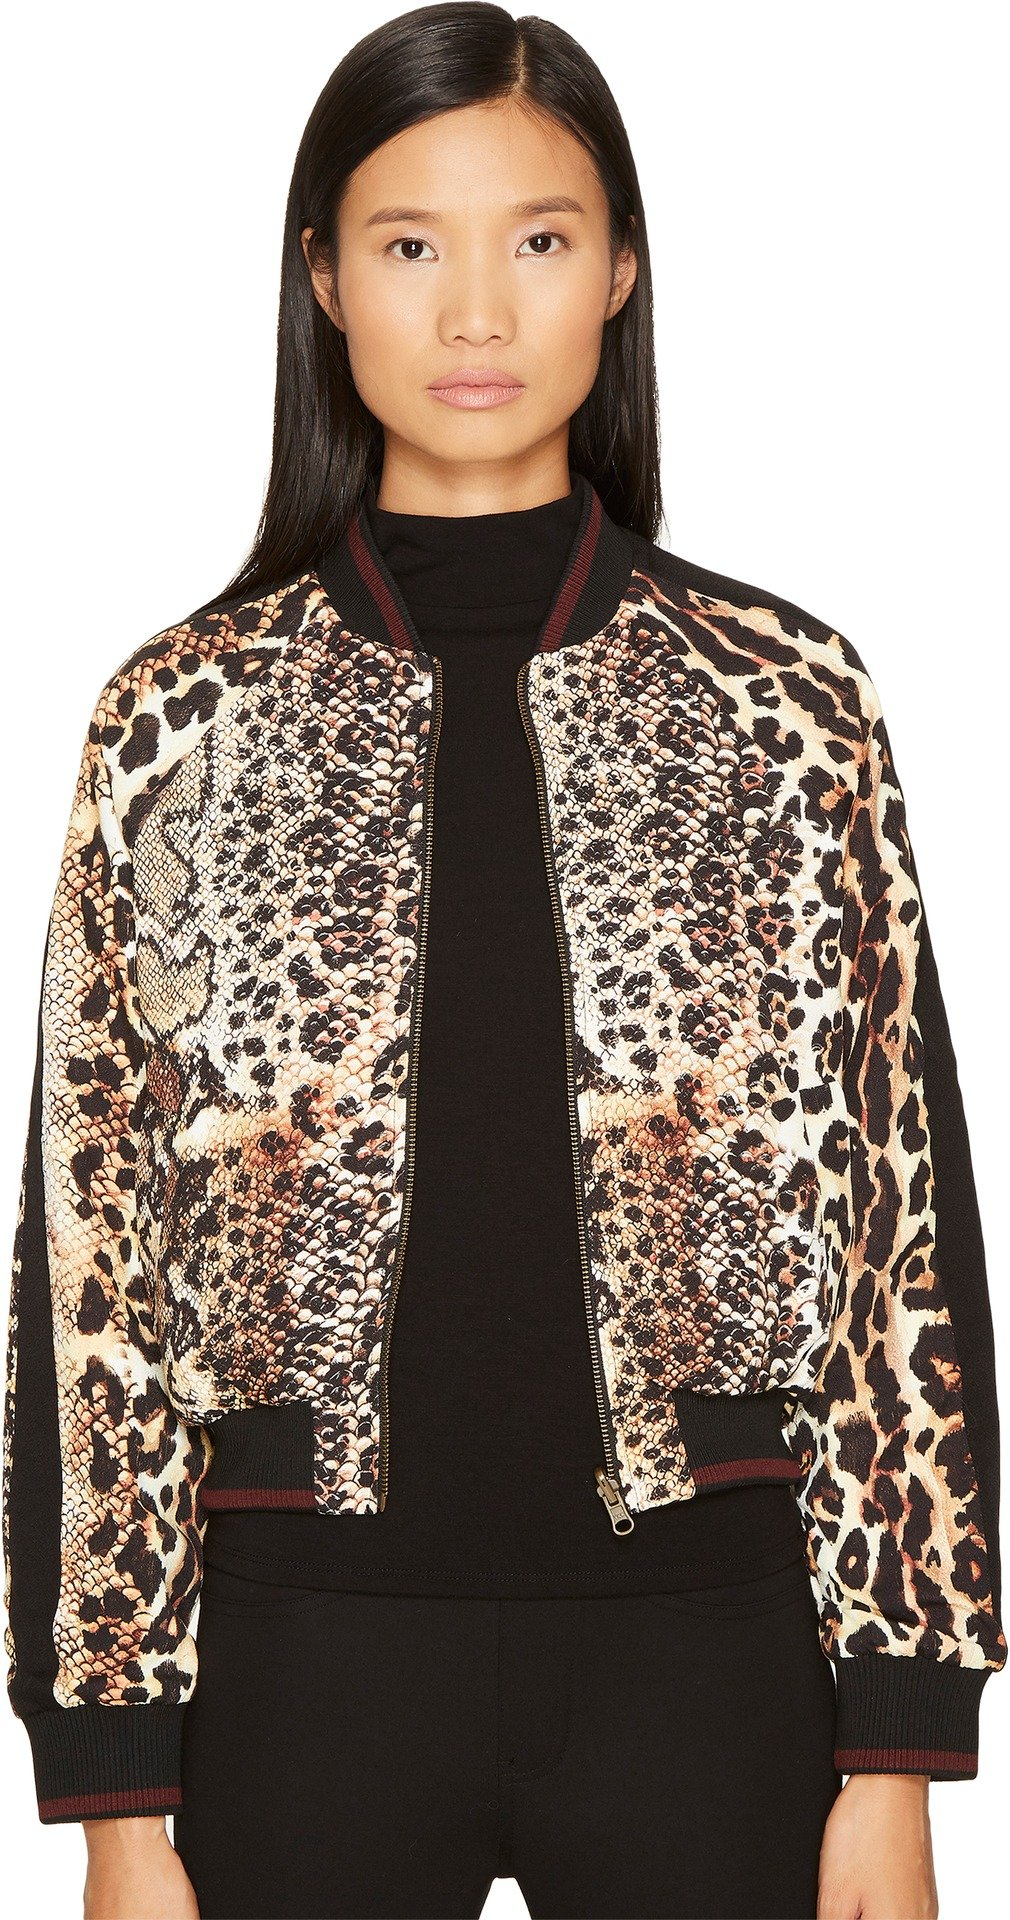 Just Cavalli Women's Mixed Animal Print Bomber Jacket Natural Outerwear by Just Cavalli